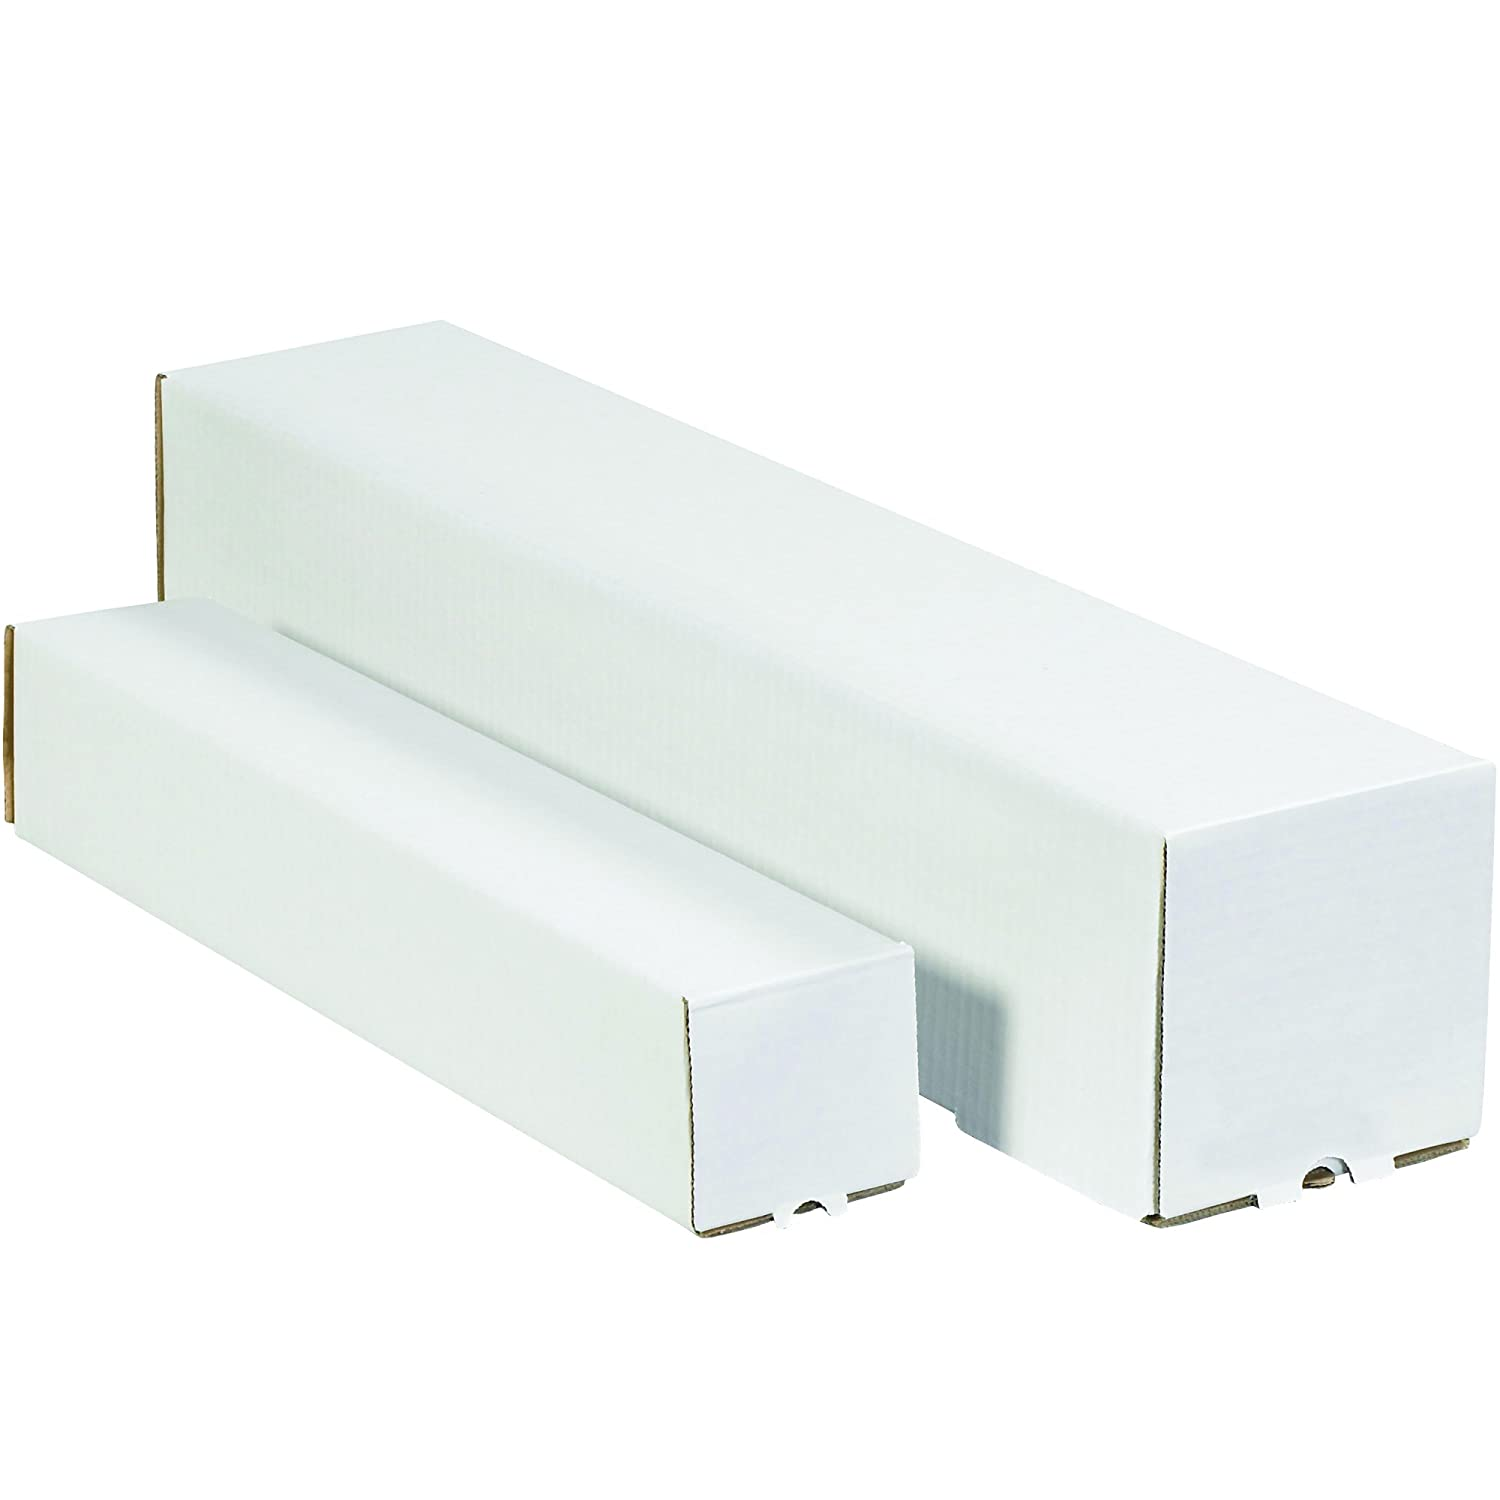 BOX USA BM2237 Square Mailing Tubes Pack of 50 Oyster White 2 x 37